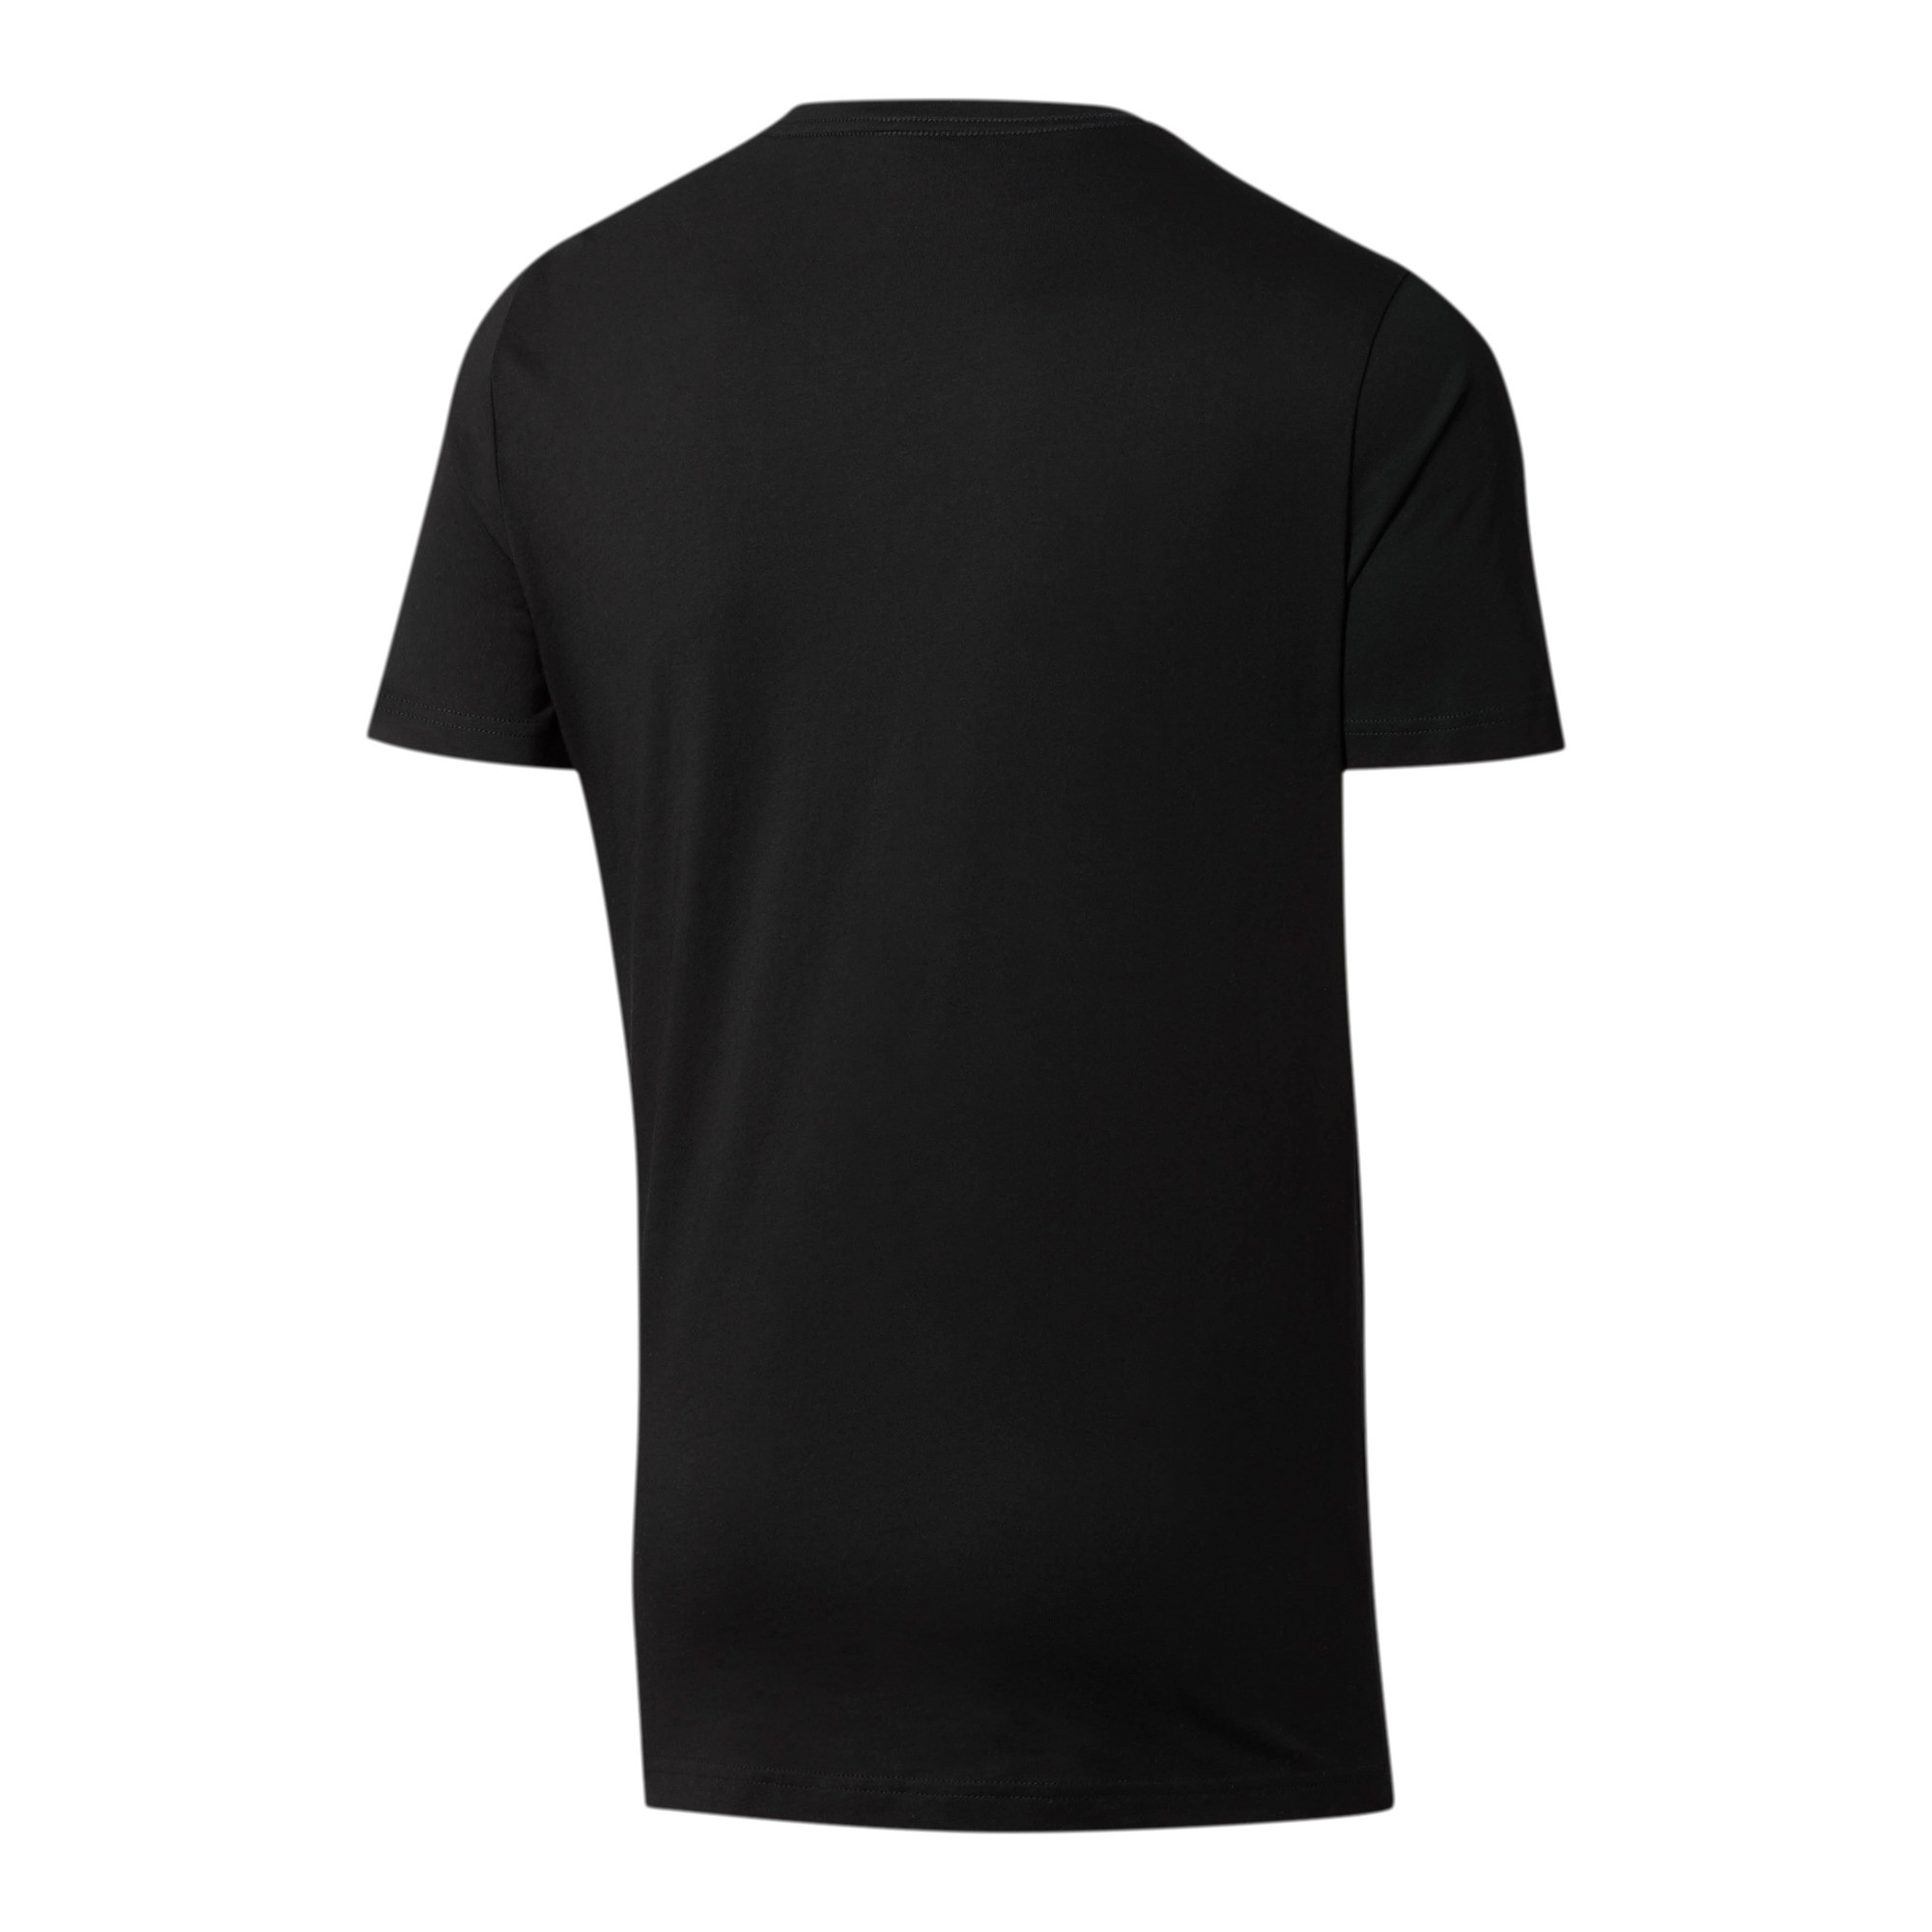 PUMA-Essentials-Men-039-s-V-Neck-Tee-Men-Tee-Basics thumbnail 6